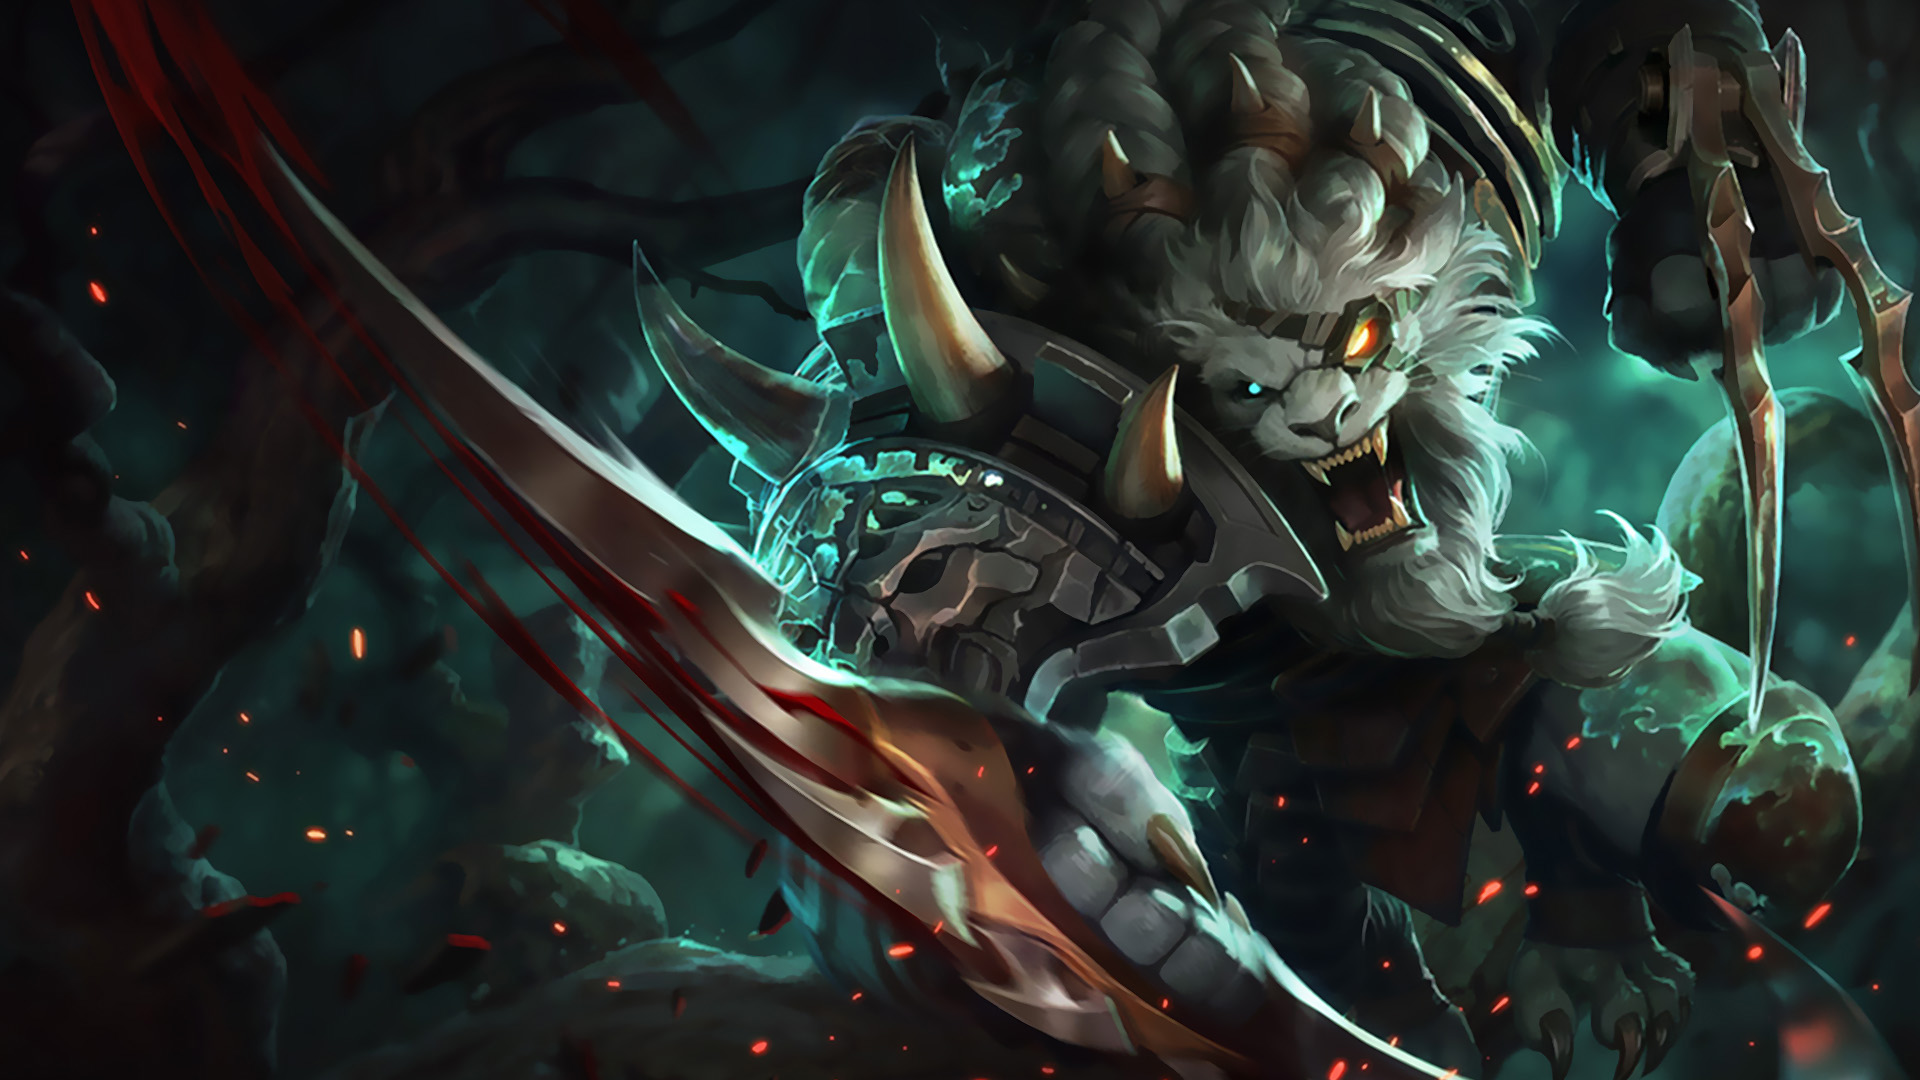 League Of Legends Hd Wallpaper Background Image 1920x1080 Id